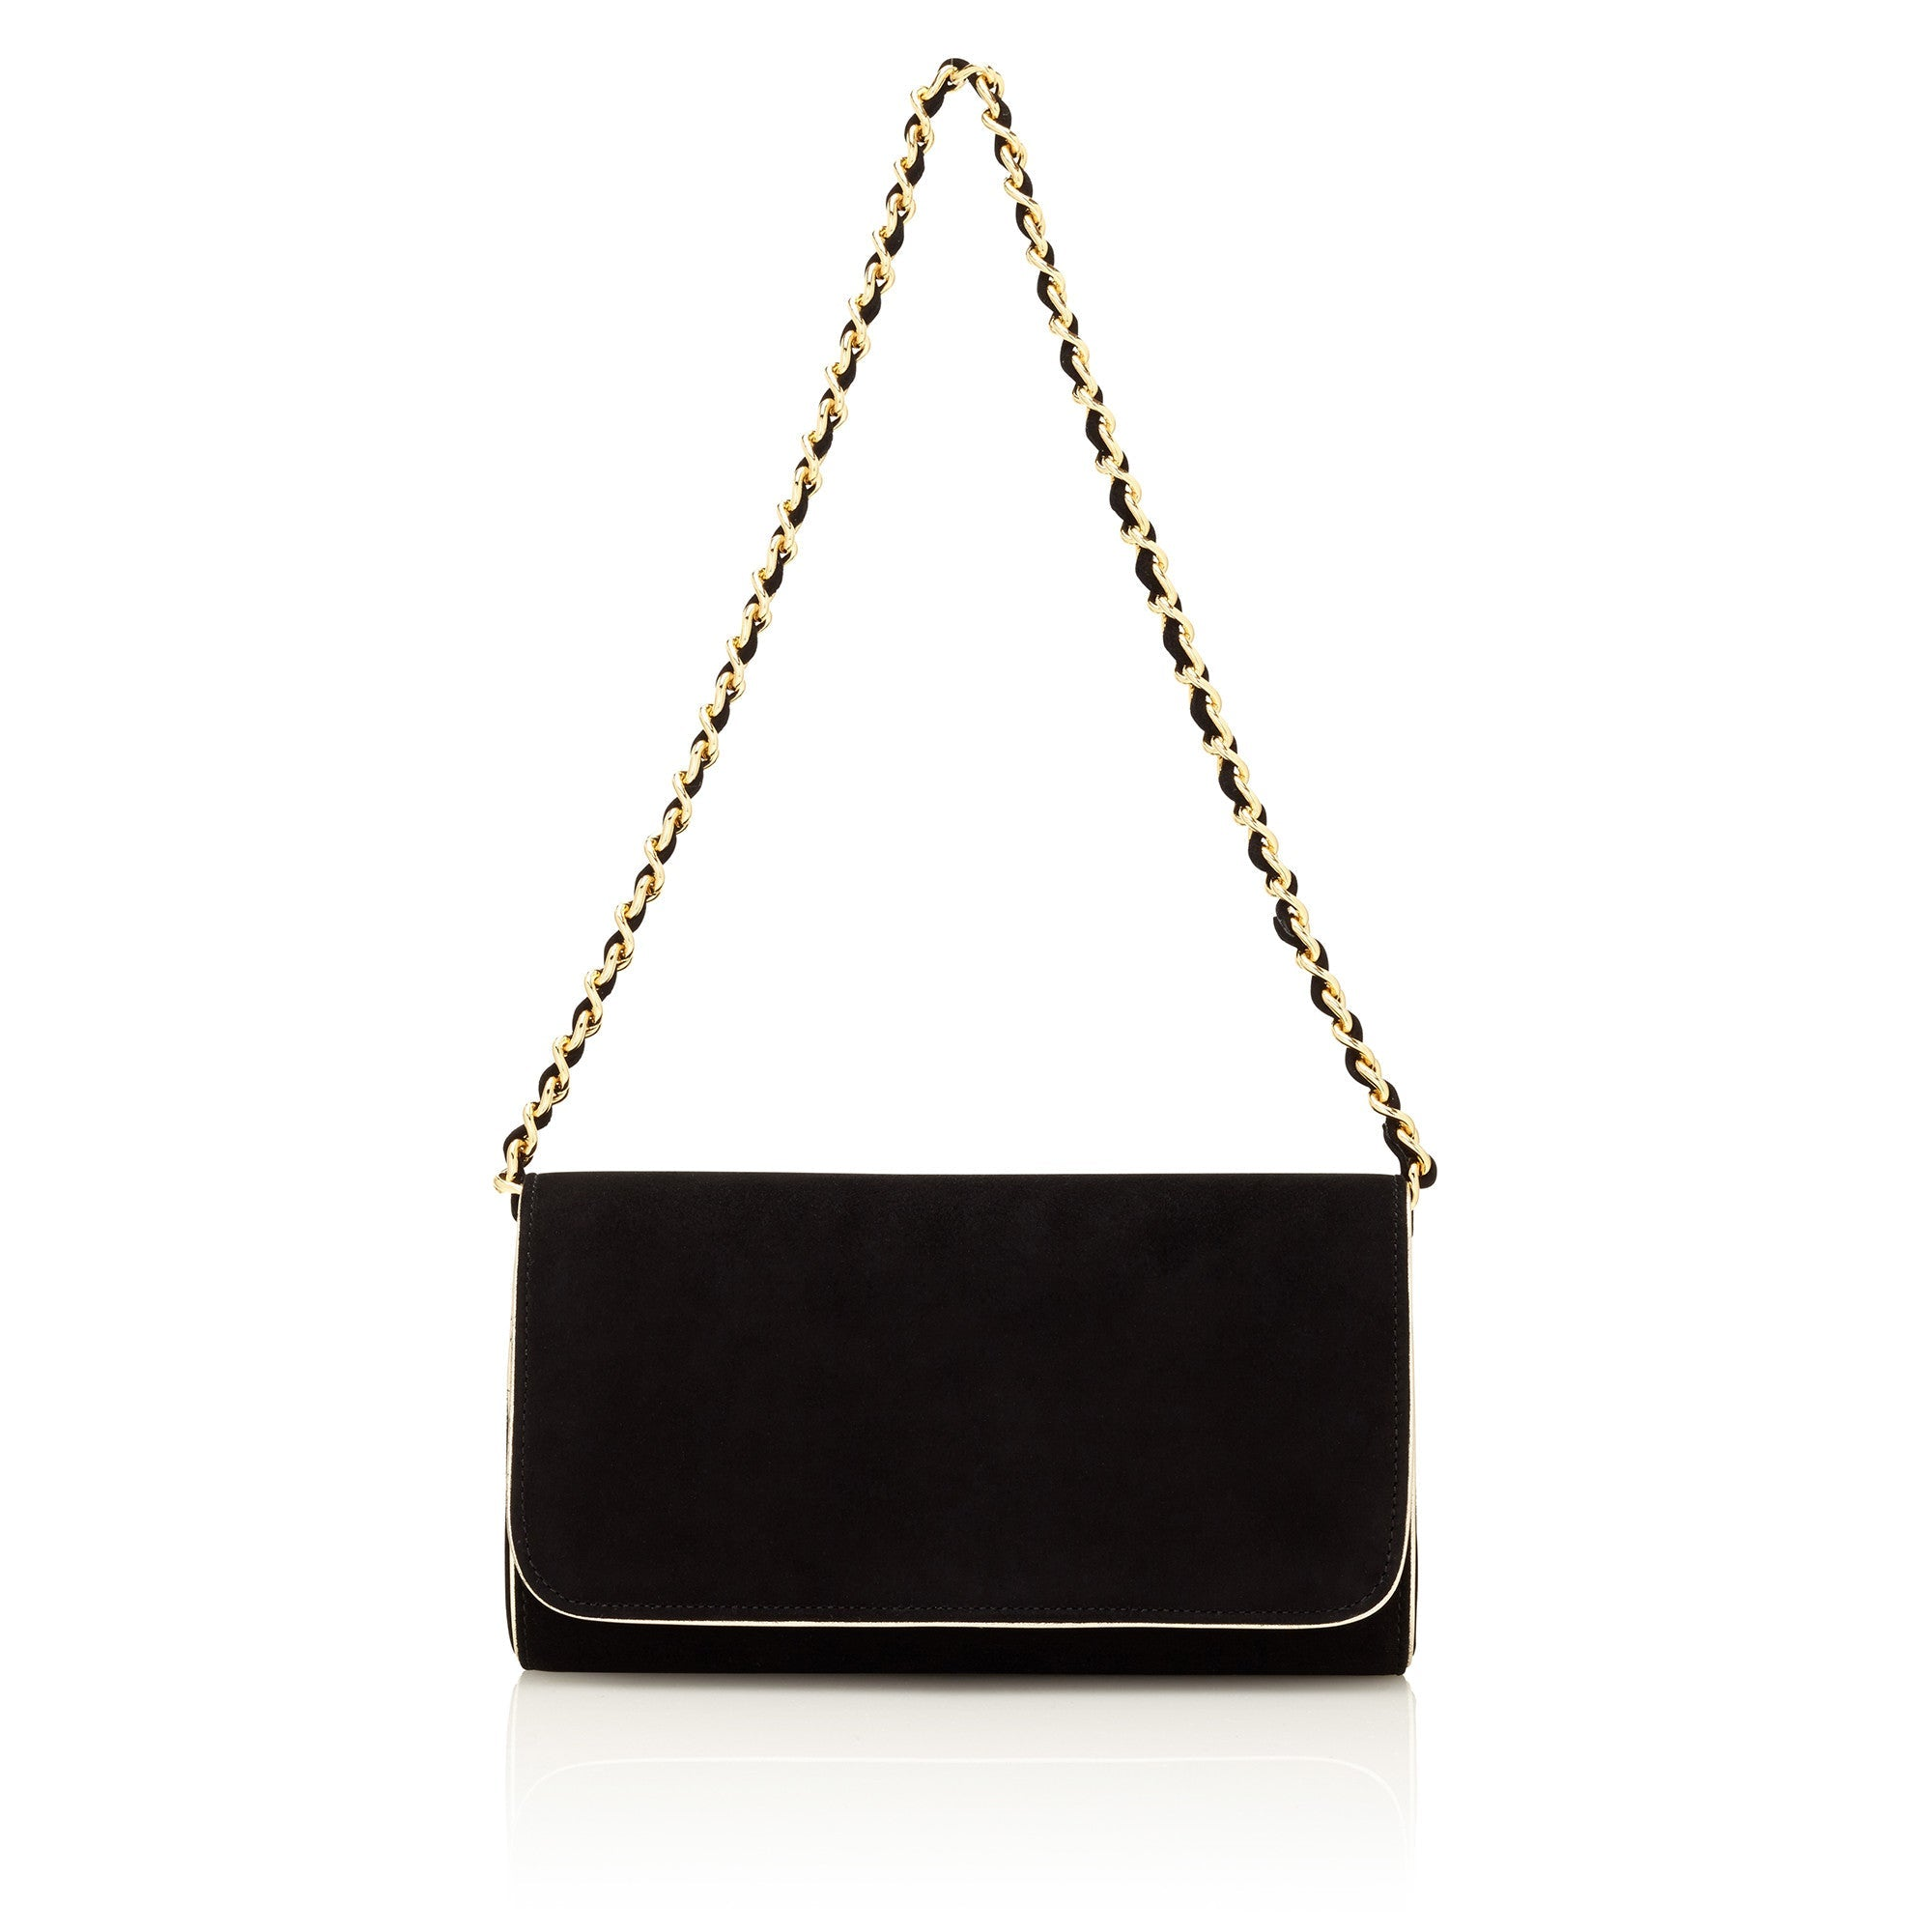 b181e2dbbbee Emmy London Natasha Jet Black Clutch Bag with Gold Chain Strap ...